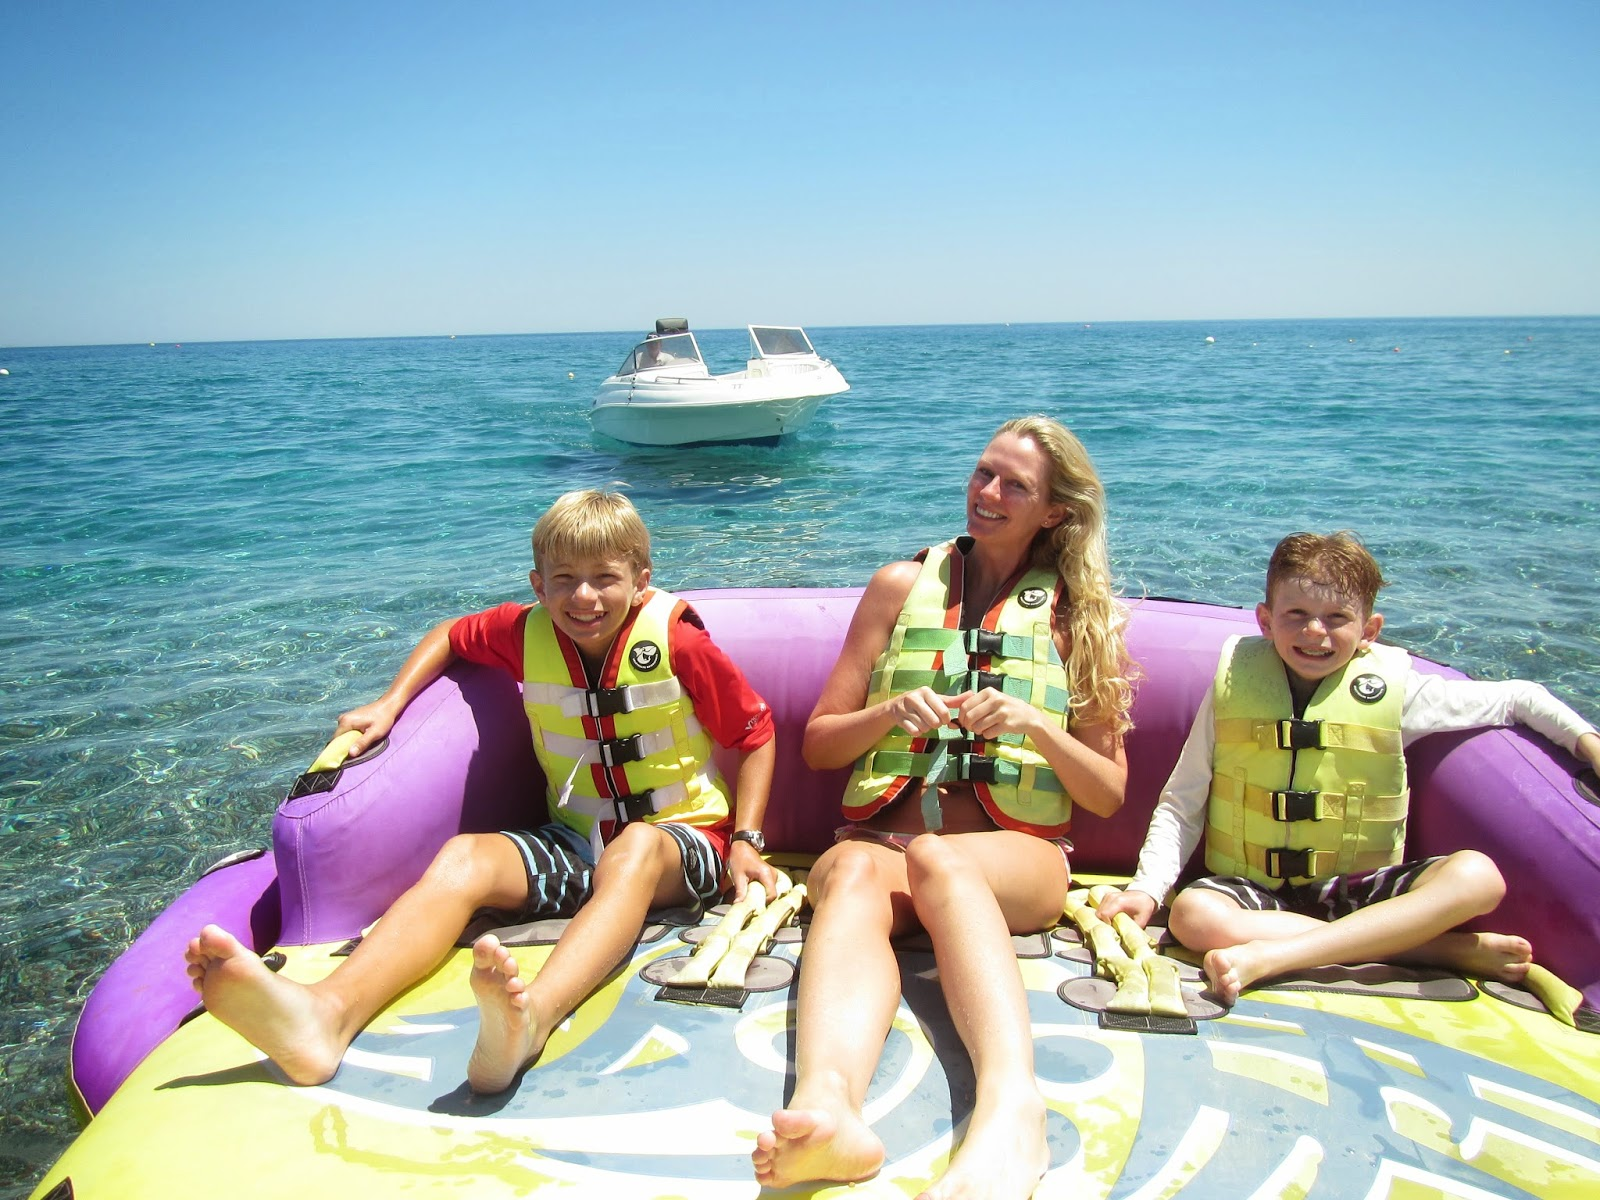 Crazy Sofa Ride Jackknife Hardware Around The World With Flahertys When We Got Back To Beach Took A Is An Inflatable Lounge Chair That Seats Three People You Hook Up Behind